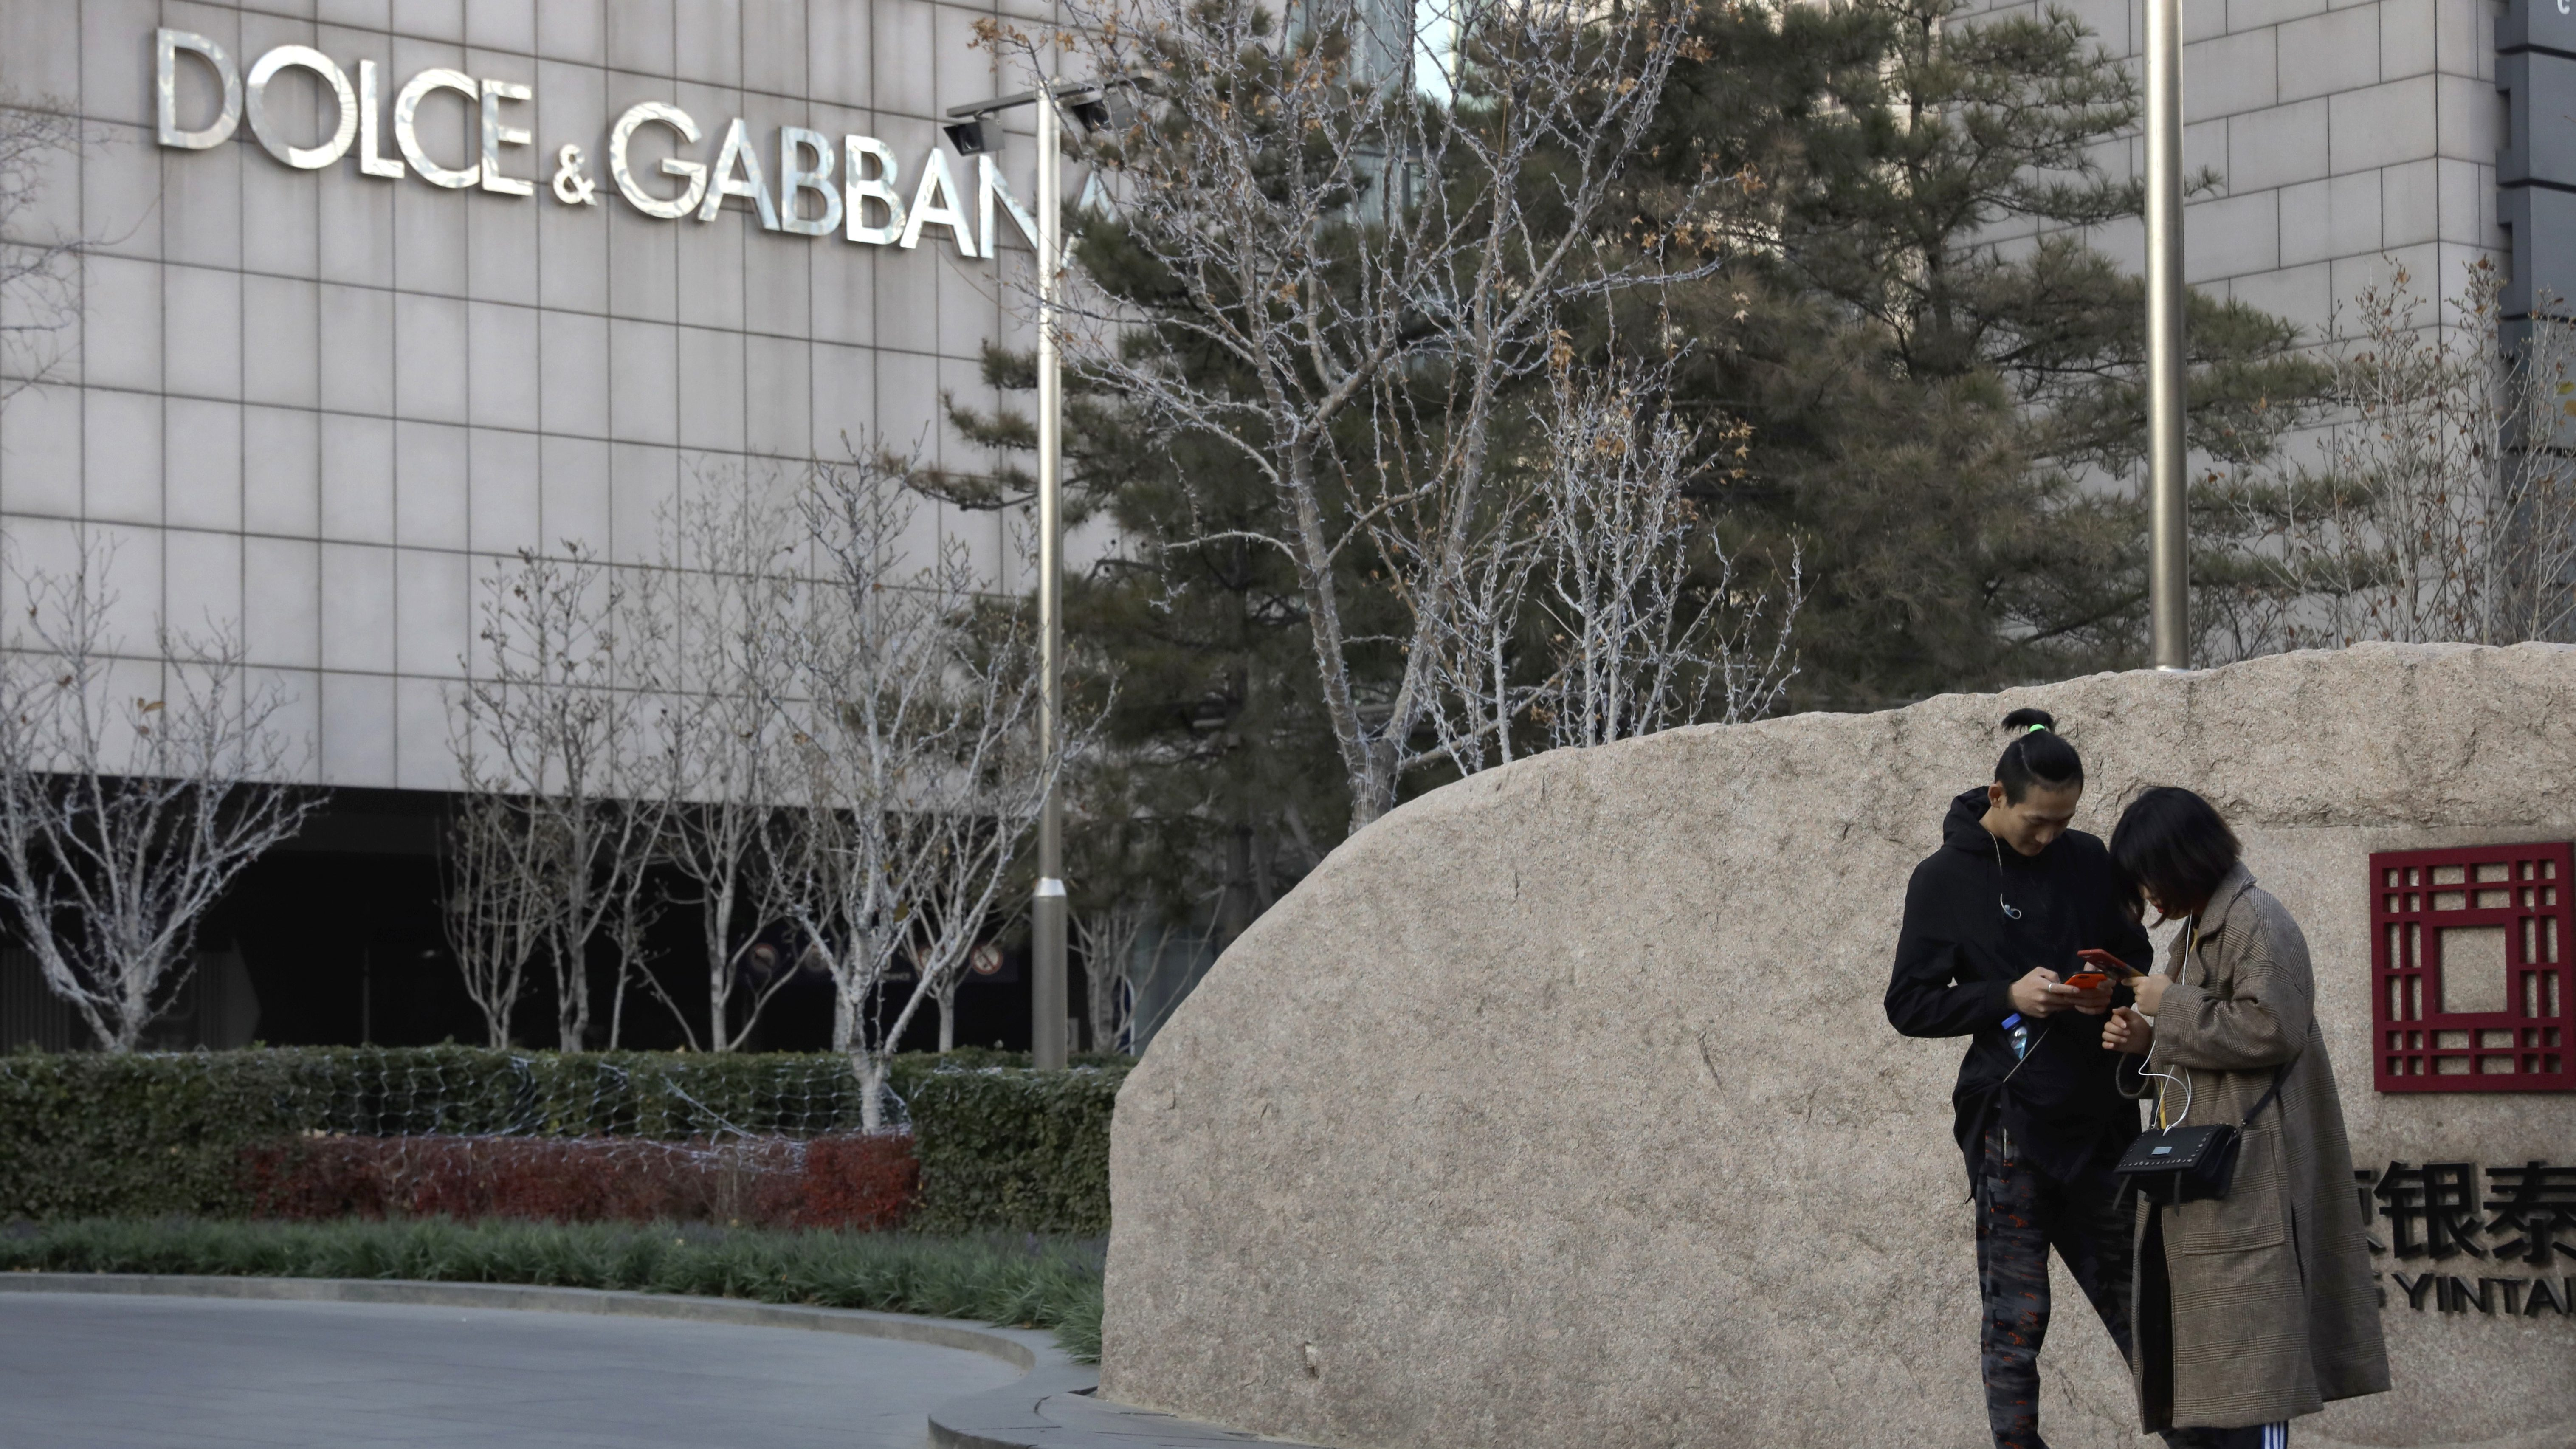 Dolce & Gabbana still shunned online in China after racism controversy